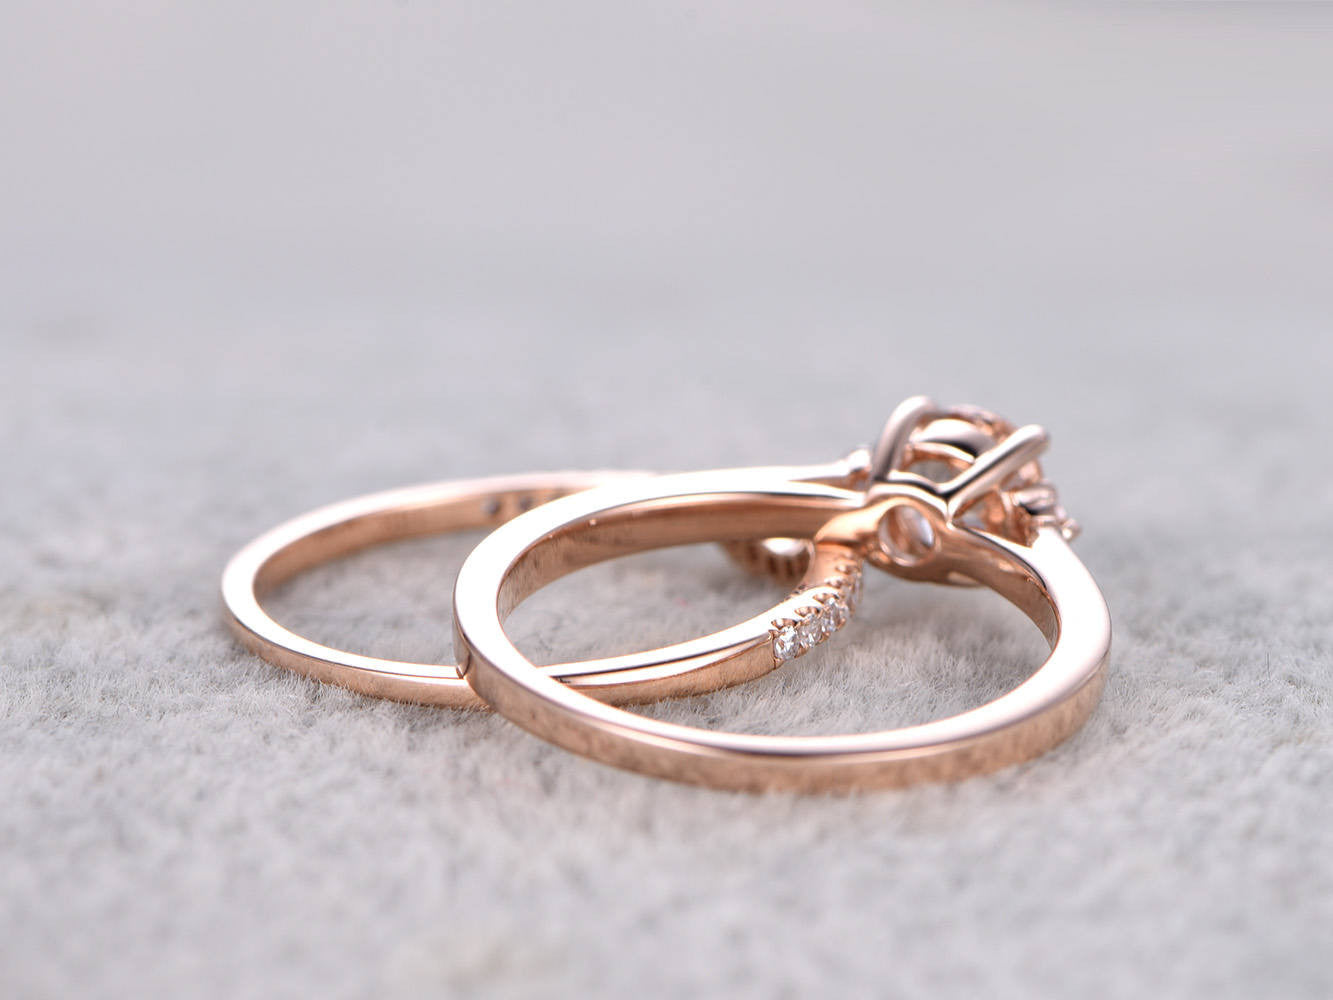 2 Morganite Bridal Set,Engagement ring Rose gold,3 stone,Diamond wedding band,14k,5mm Round Cut,Gemstone Promise Ring,Curve matching band